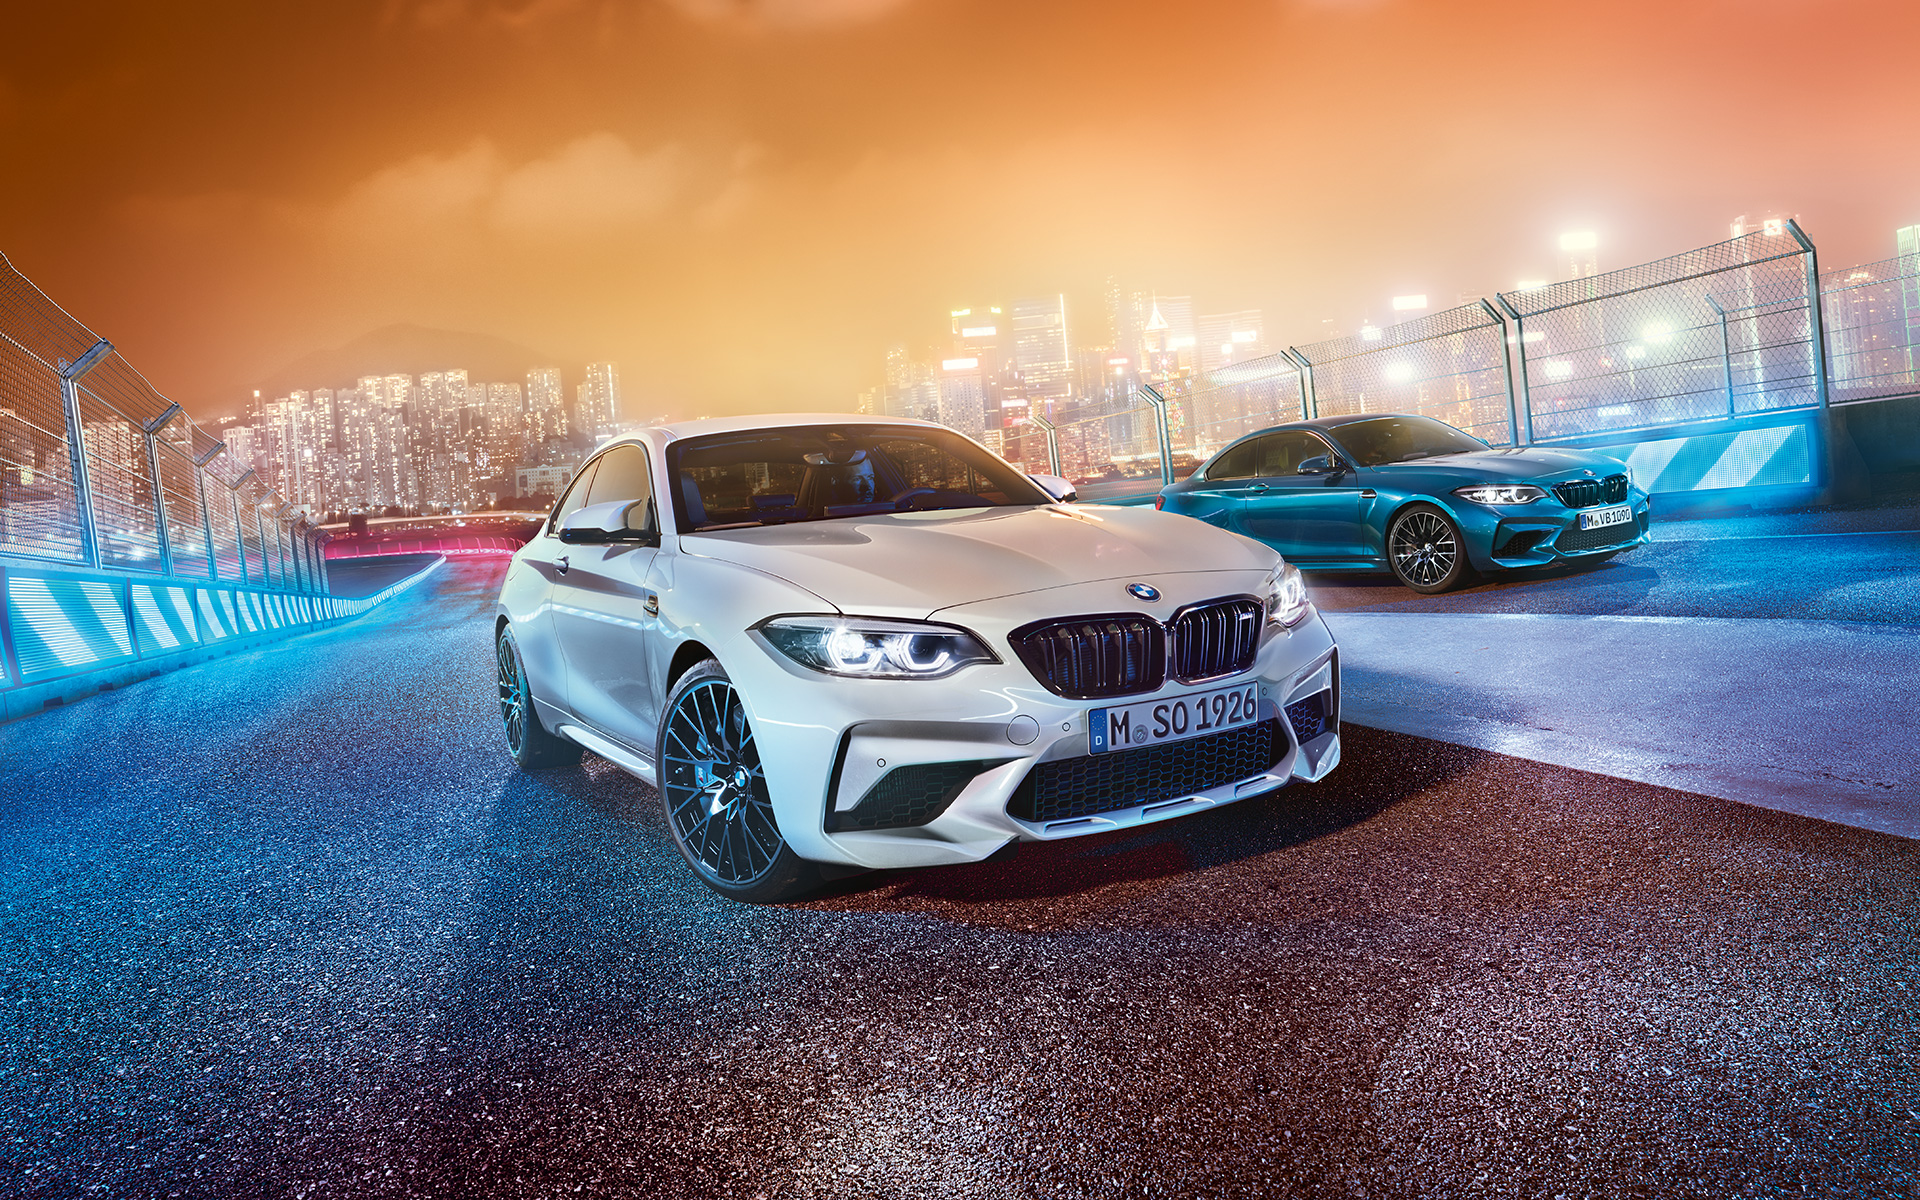 bmw-m-series-m2-exterior-intro-01-large.jpg.asset.1522767107410